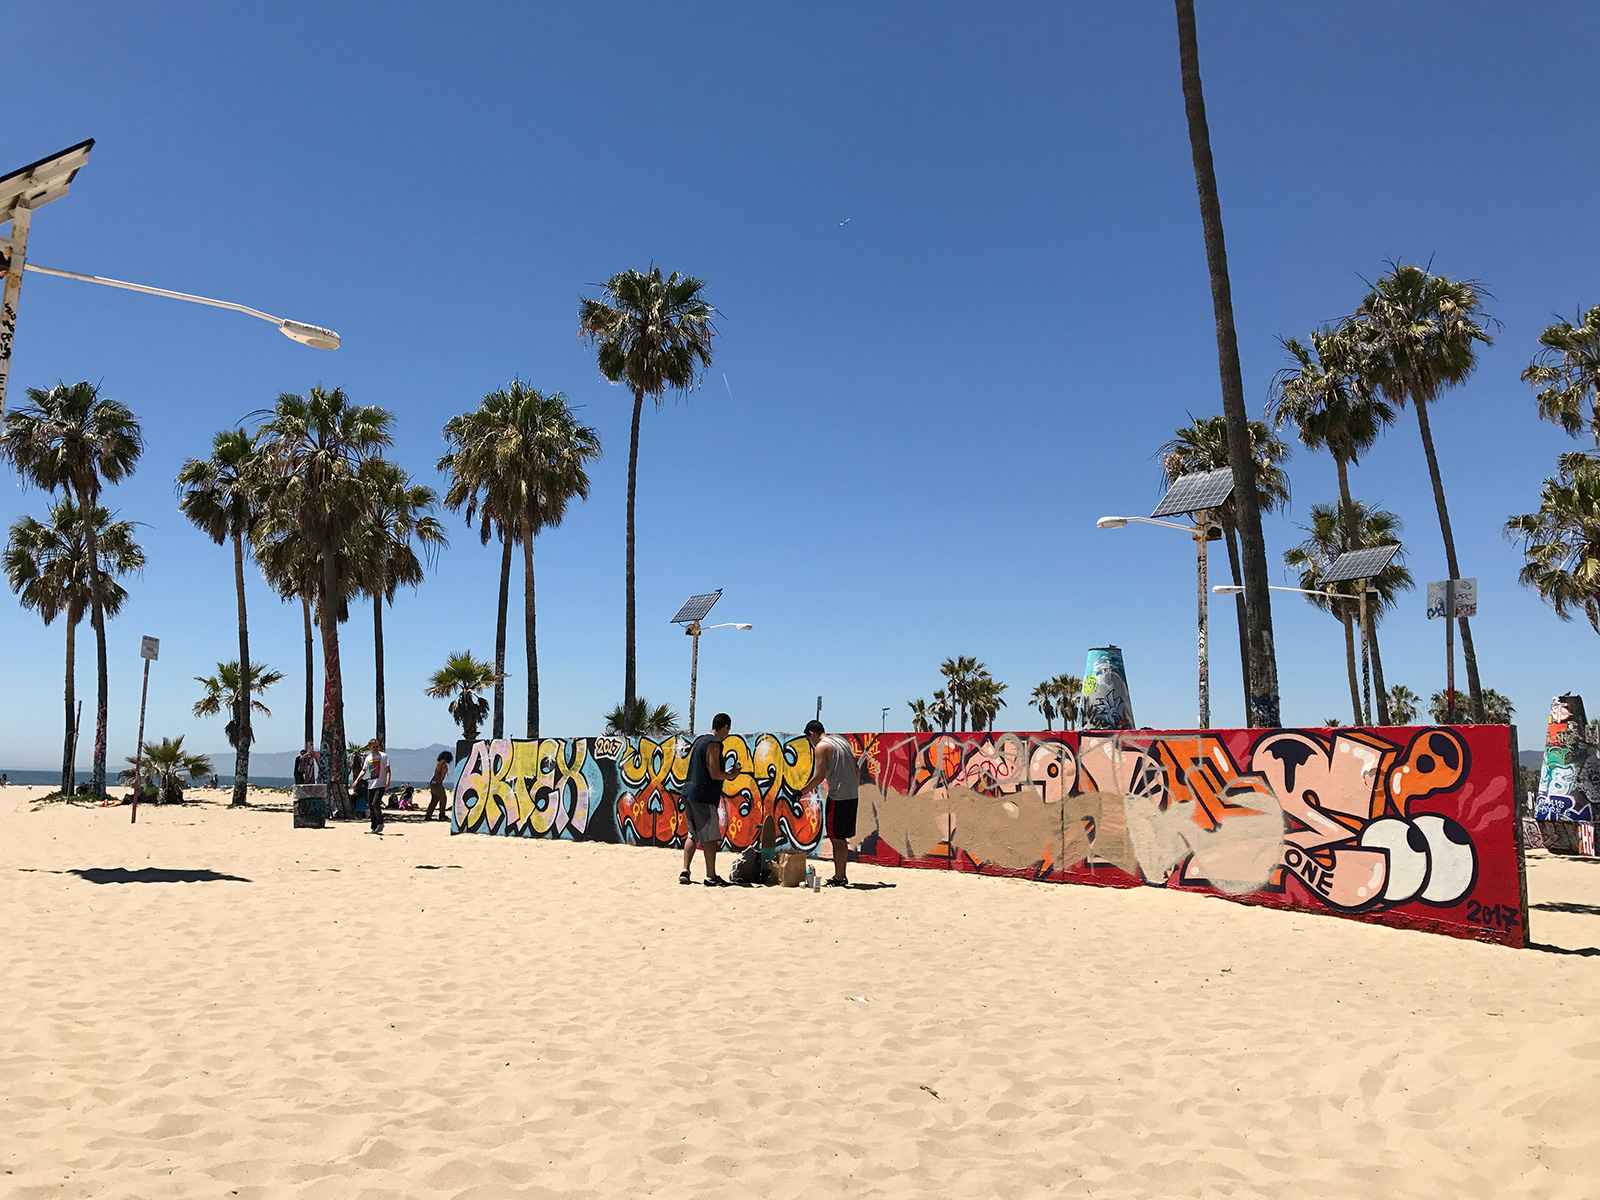 Venice Beach by Jets Like Taxis